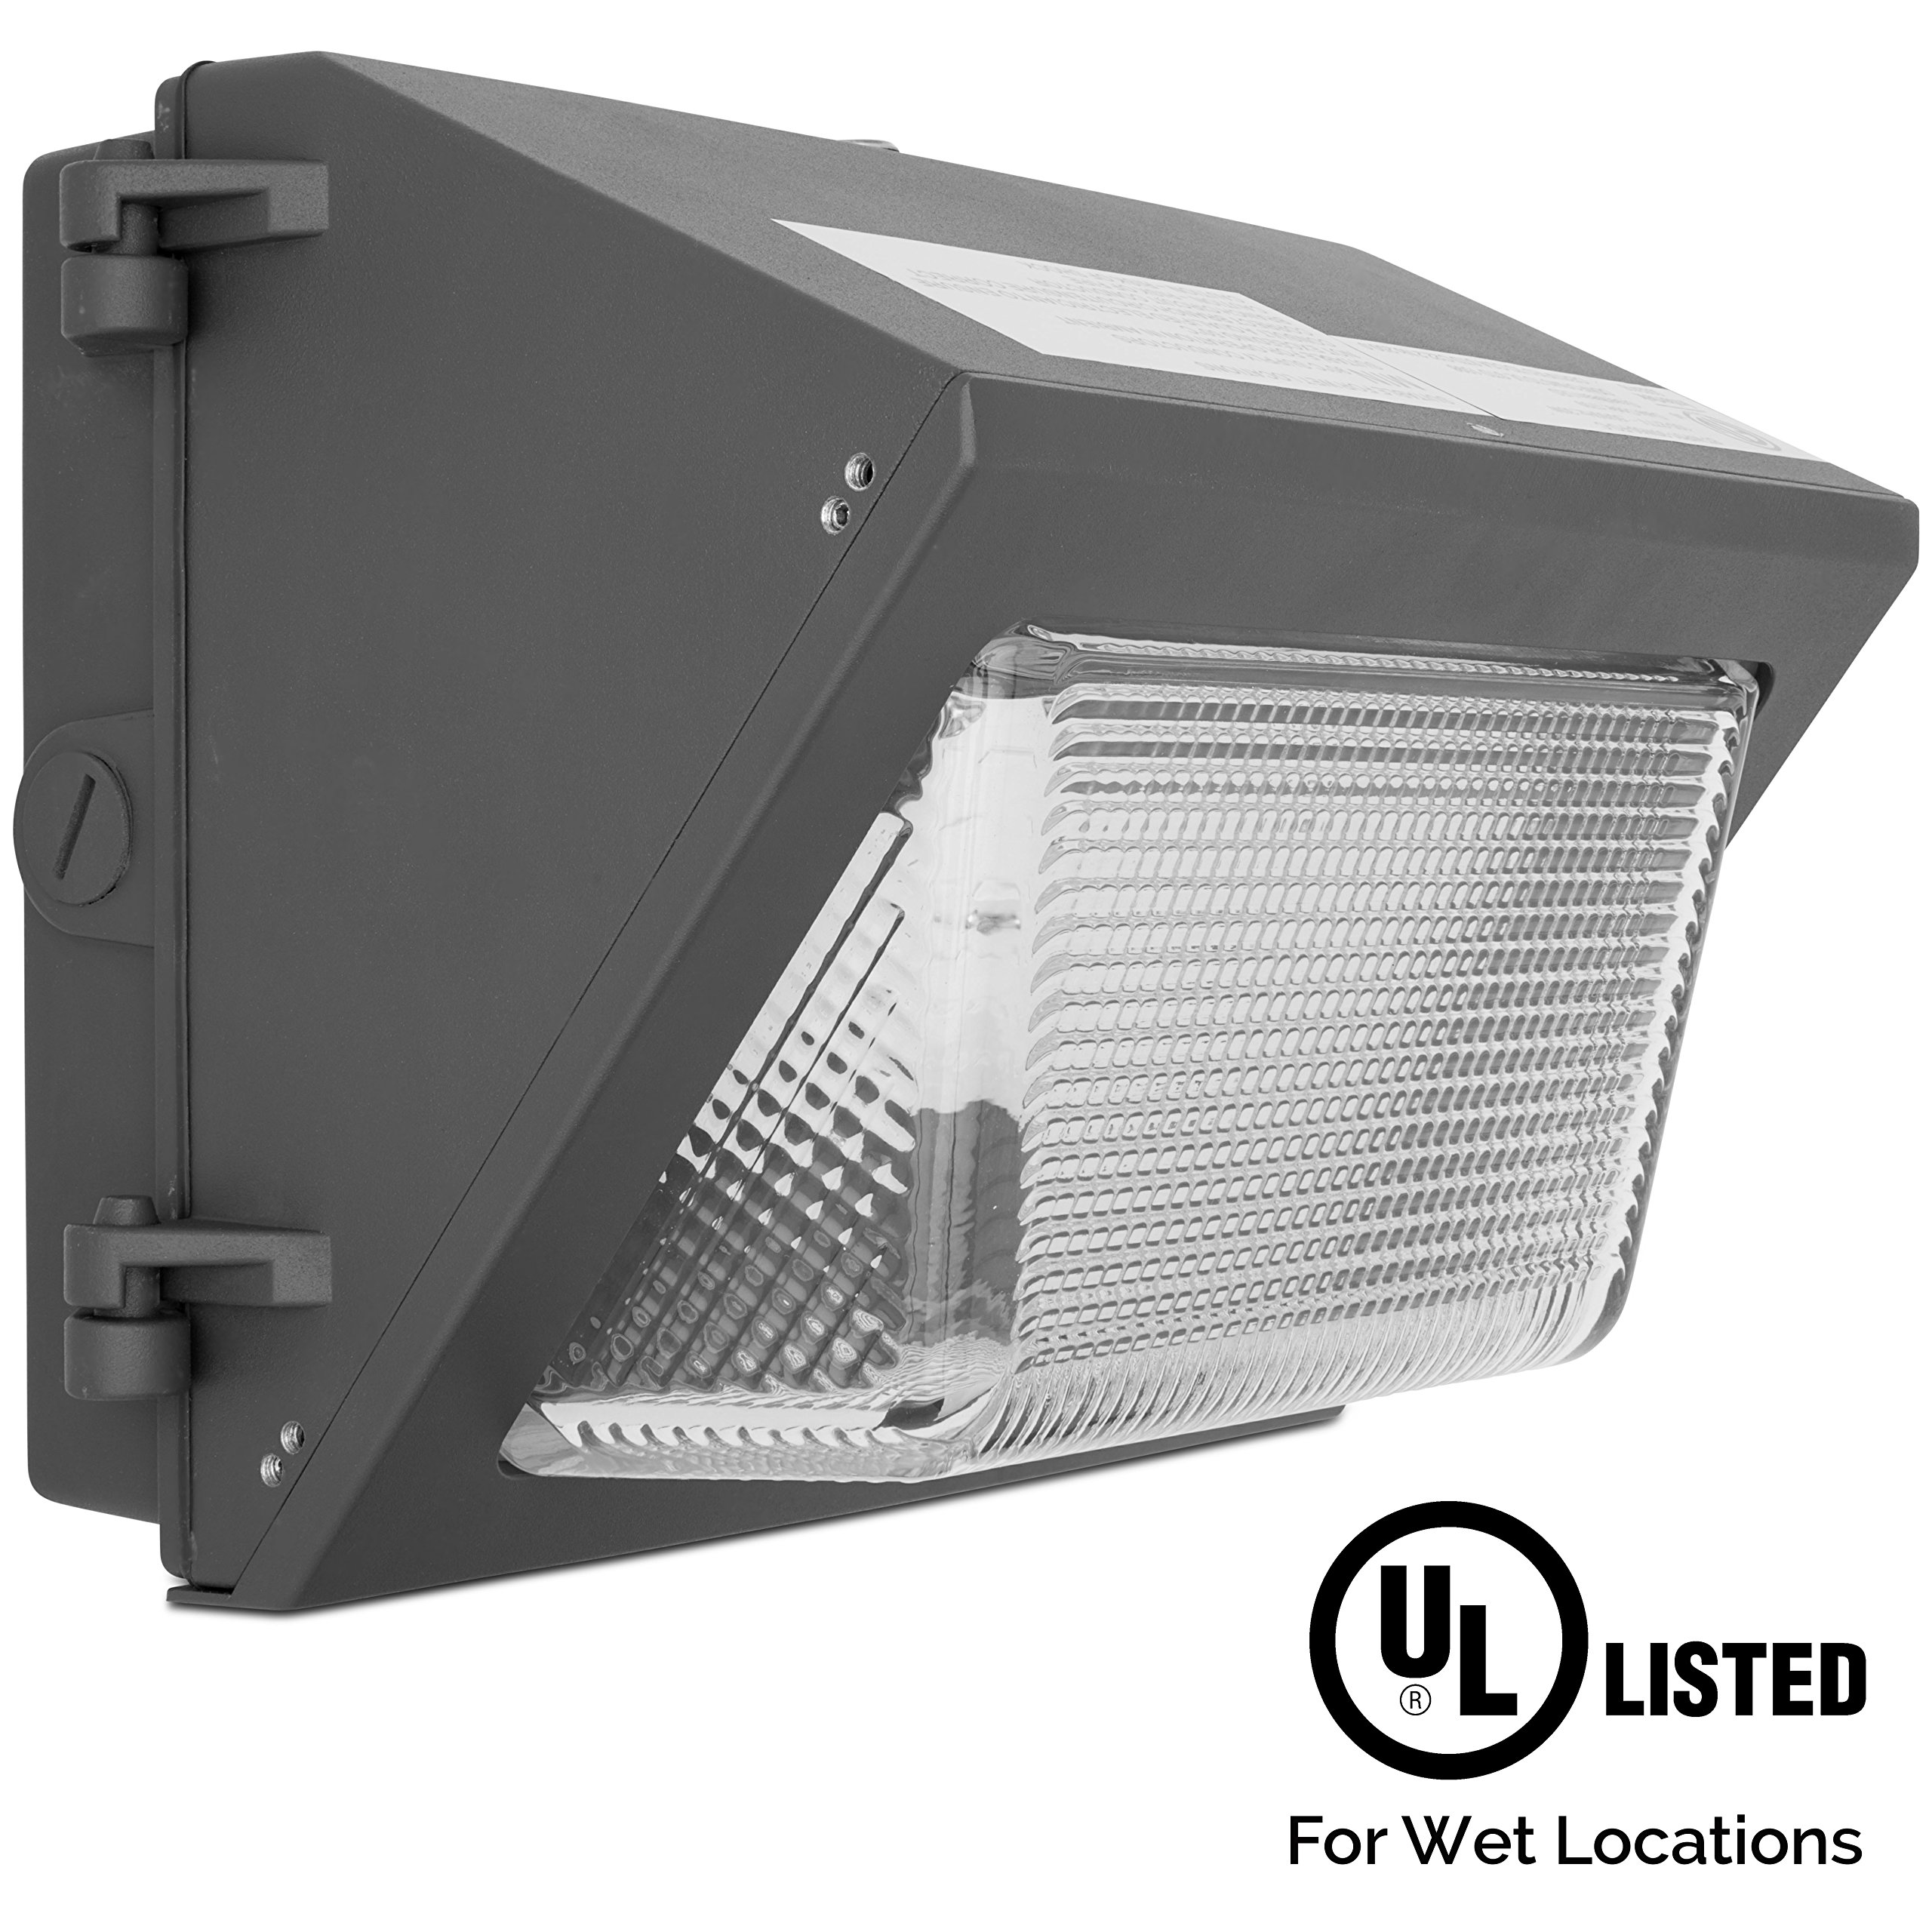 Greenbeam 30W LED Outdoor Wall Pack Fixture, 3300 Lumen, 50K White Light, ETL, DLC Premium, FCC, Dusk to Dawn Photocell, Samsung LEDs, Die-Cast Aluminum Body, Industrial, Commercial and Residential